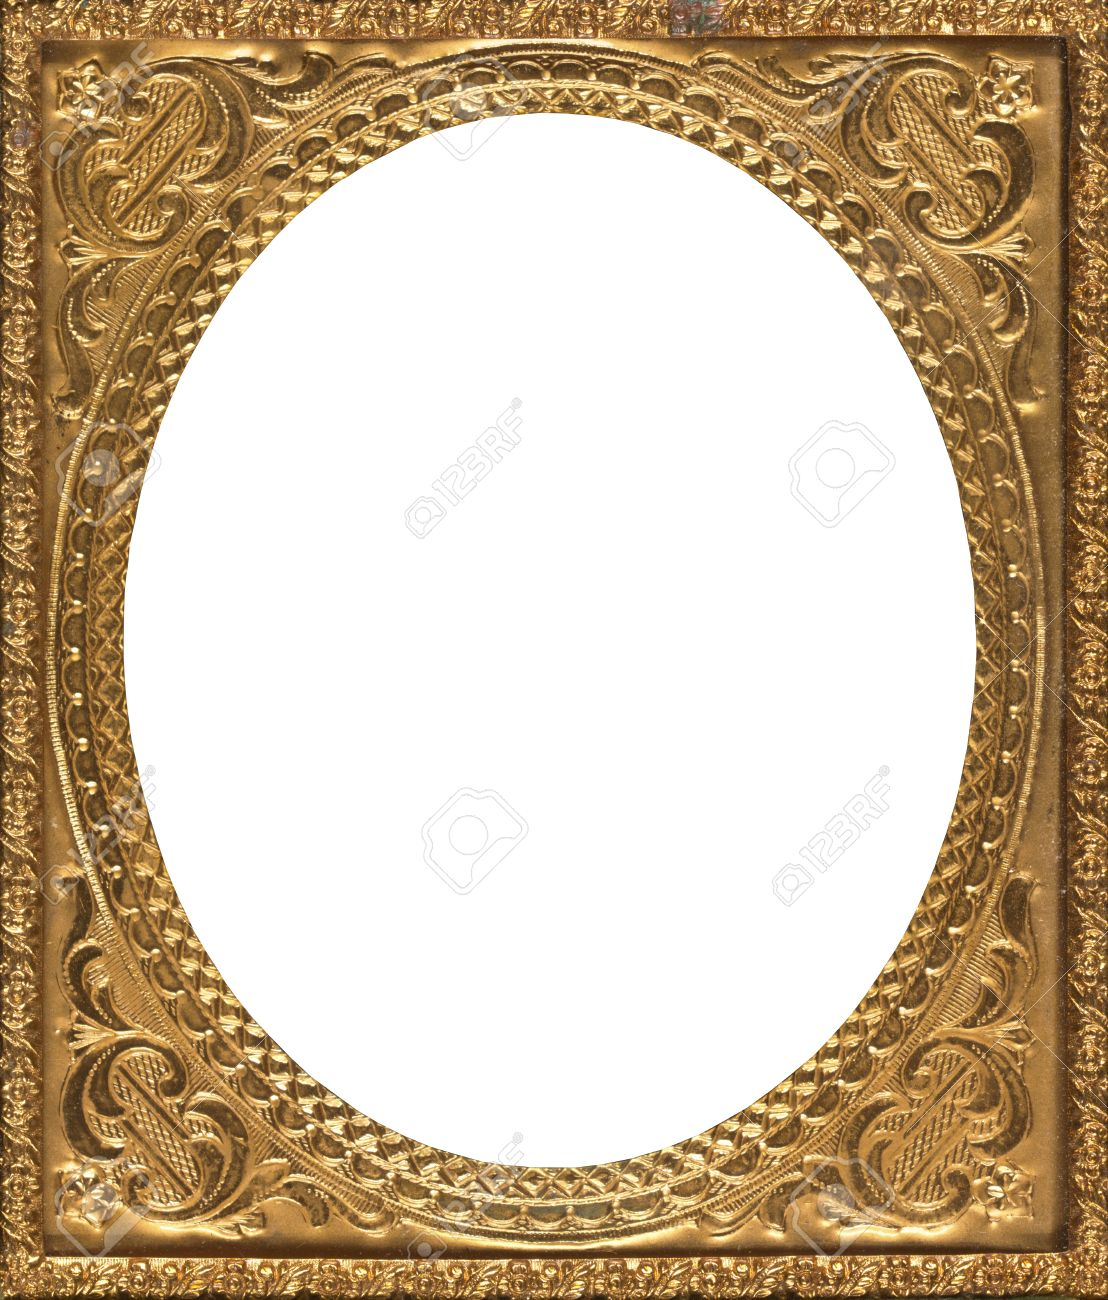 Gold Photo Frames Online Stock Photos. Royalty Free Gold Photo ...